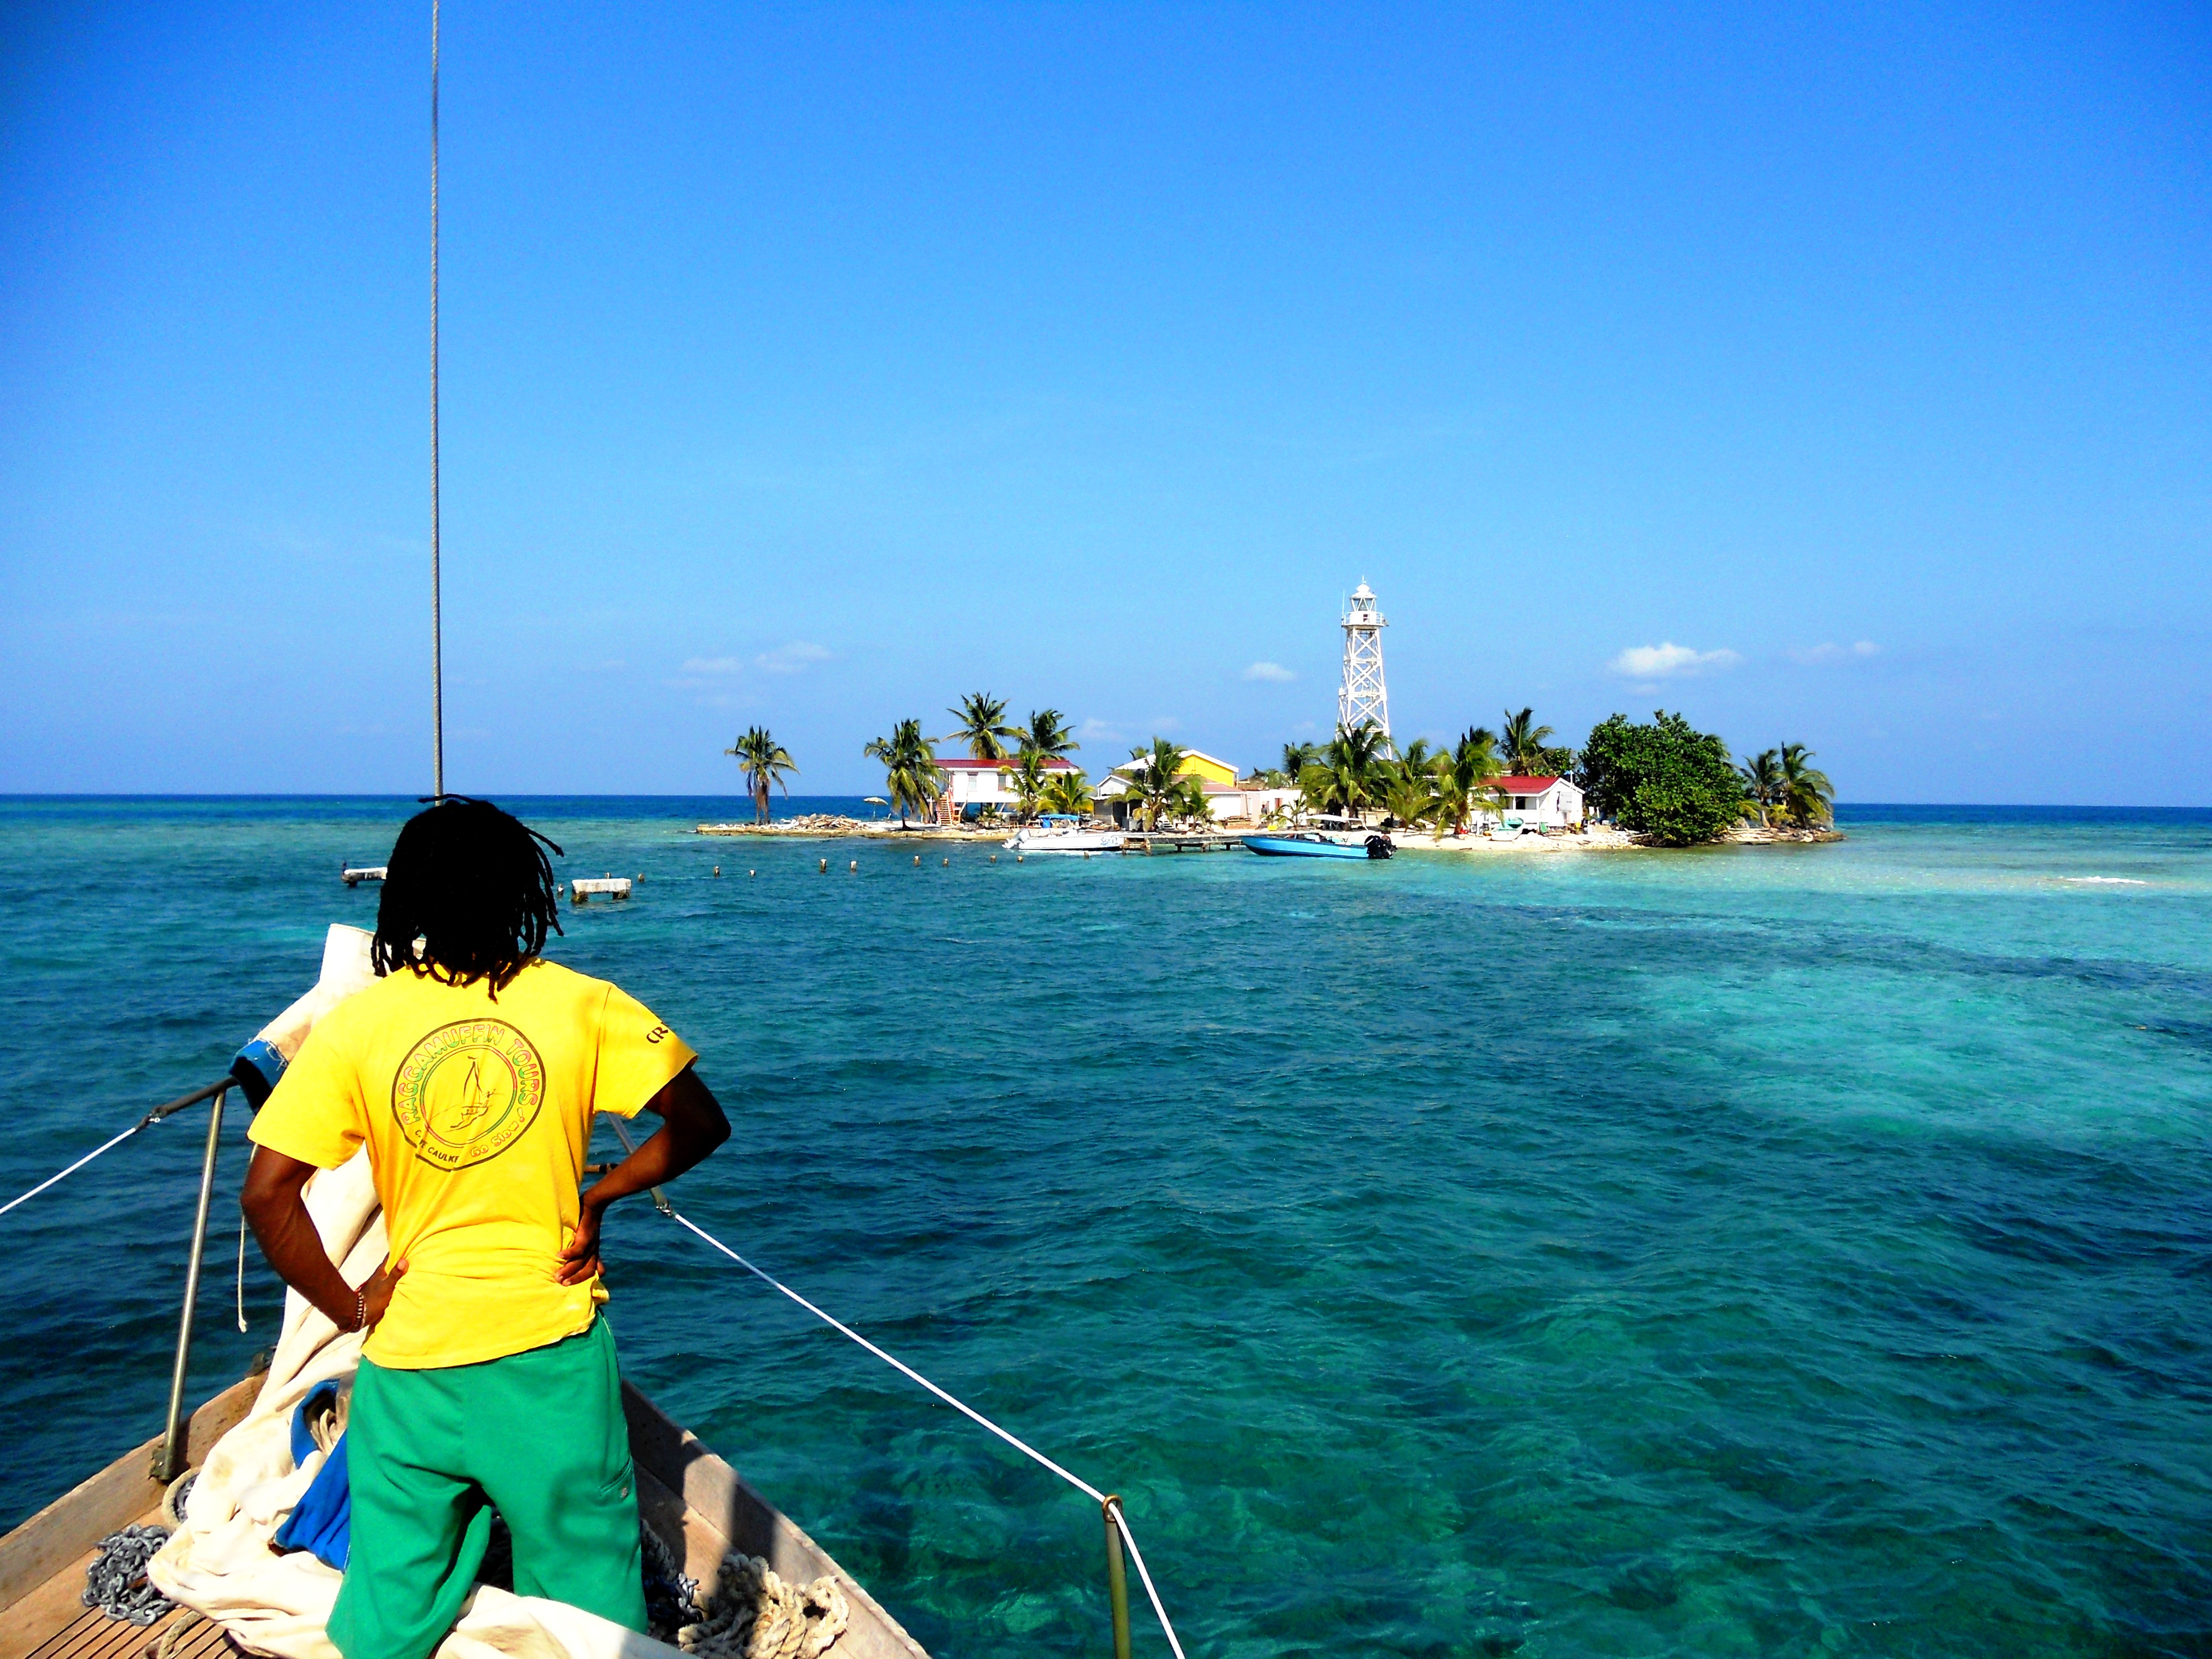 Arriving at English Caye by Erin Mutrie